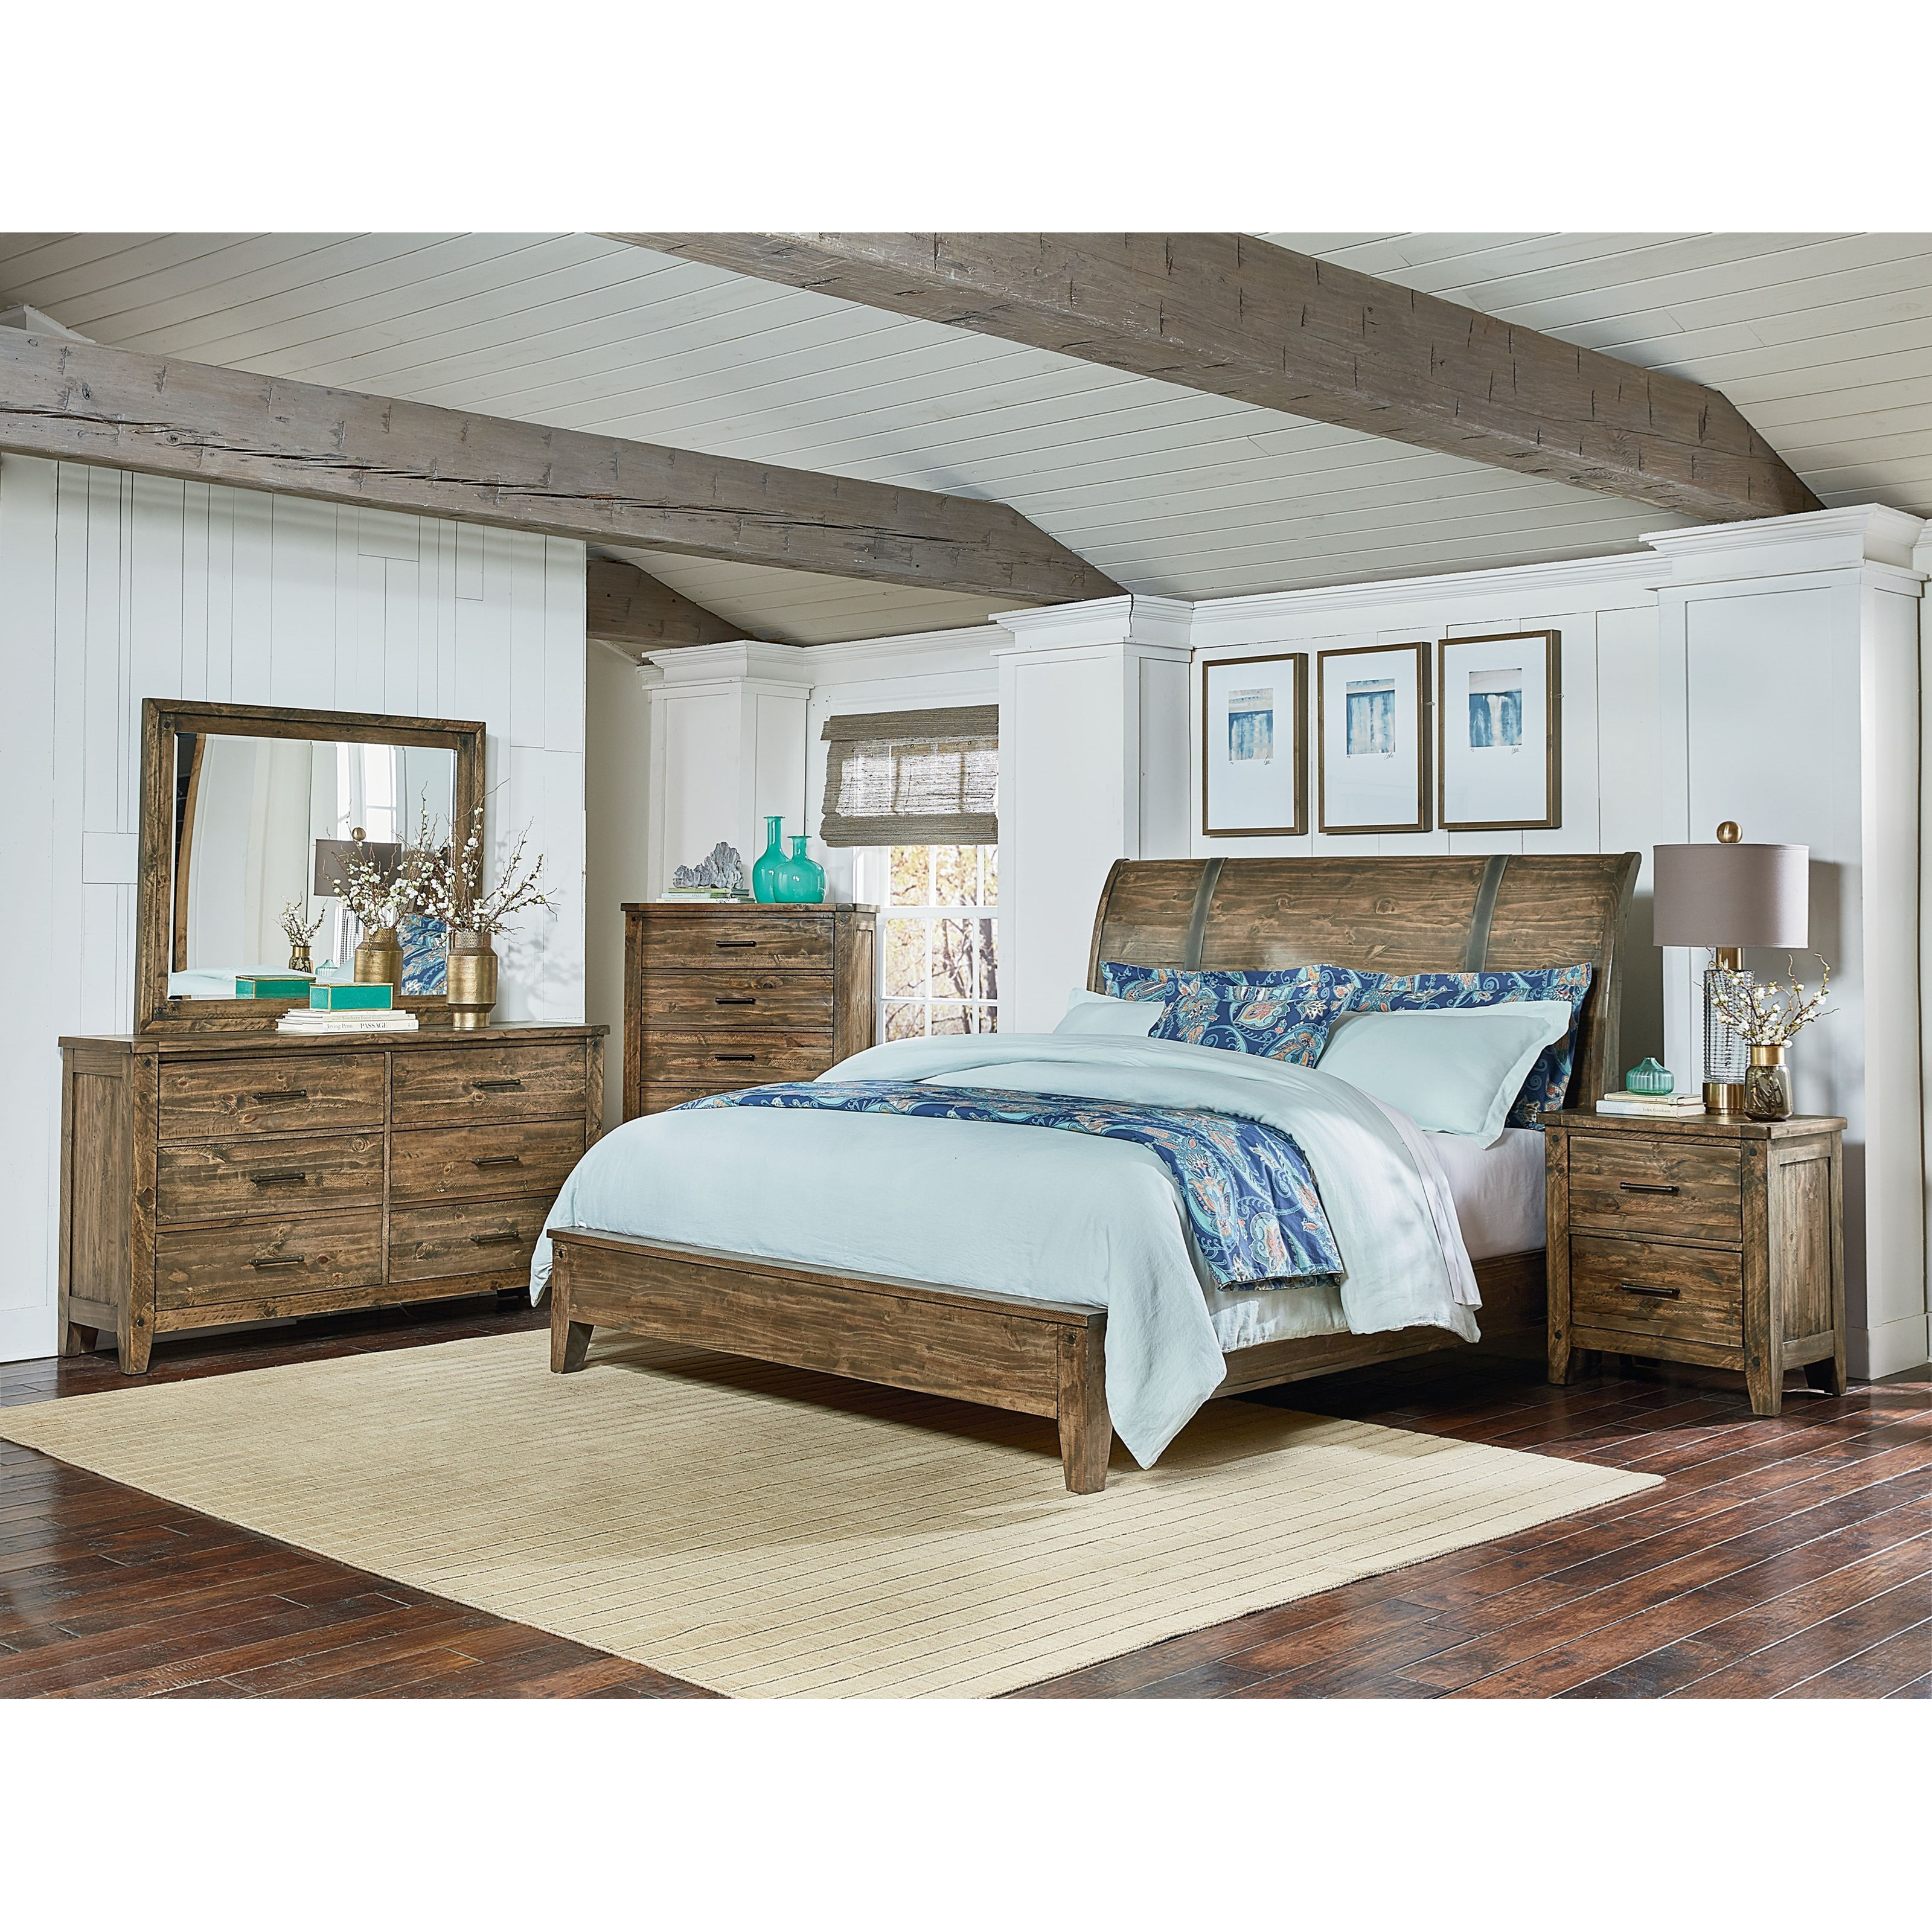 Nelson Cal King Bedroom Group by Standard Furniture at Rooms for Less